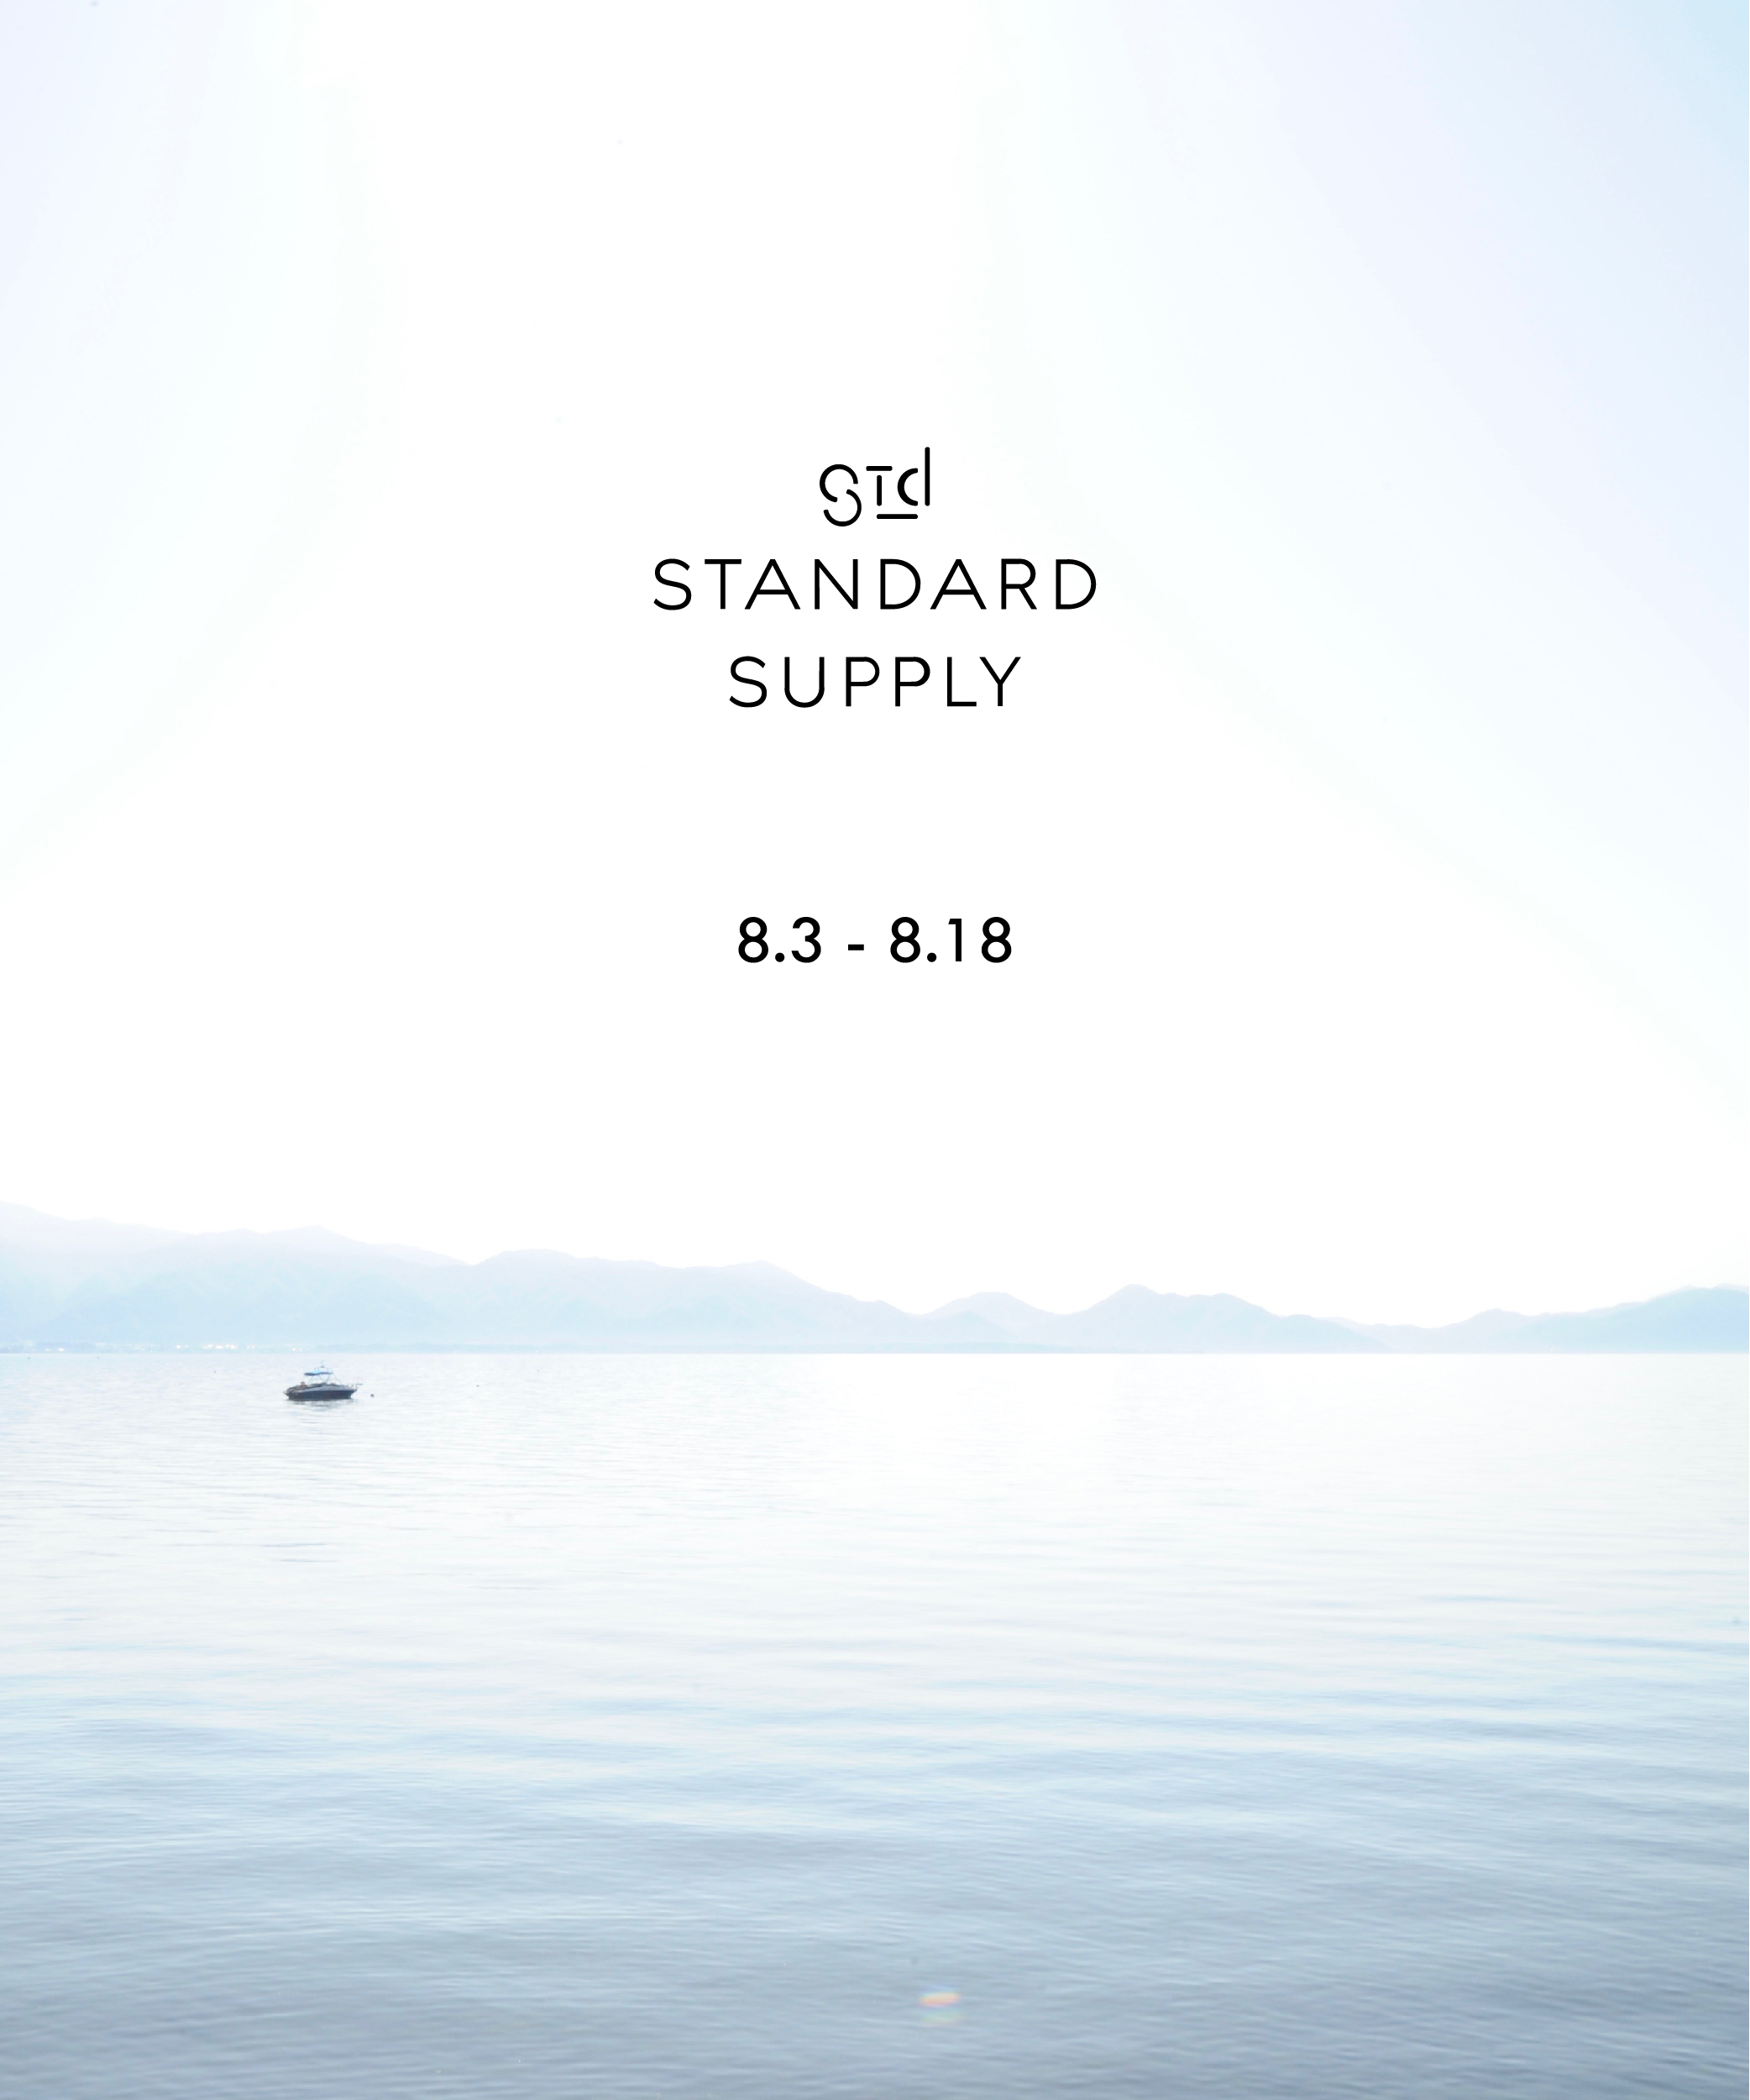 pop up_standard supply-01.jpg